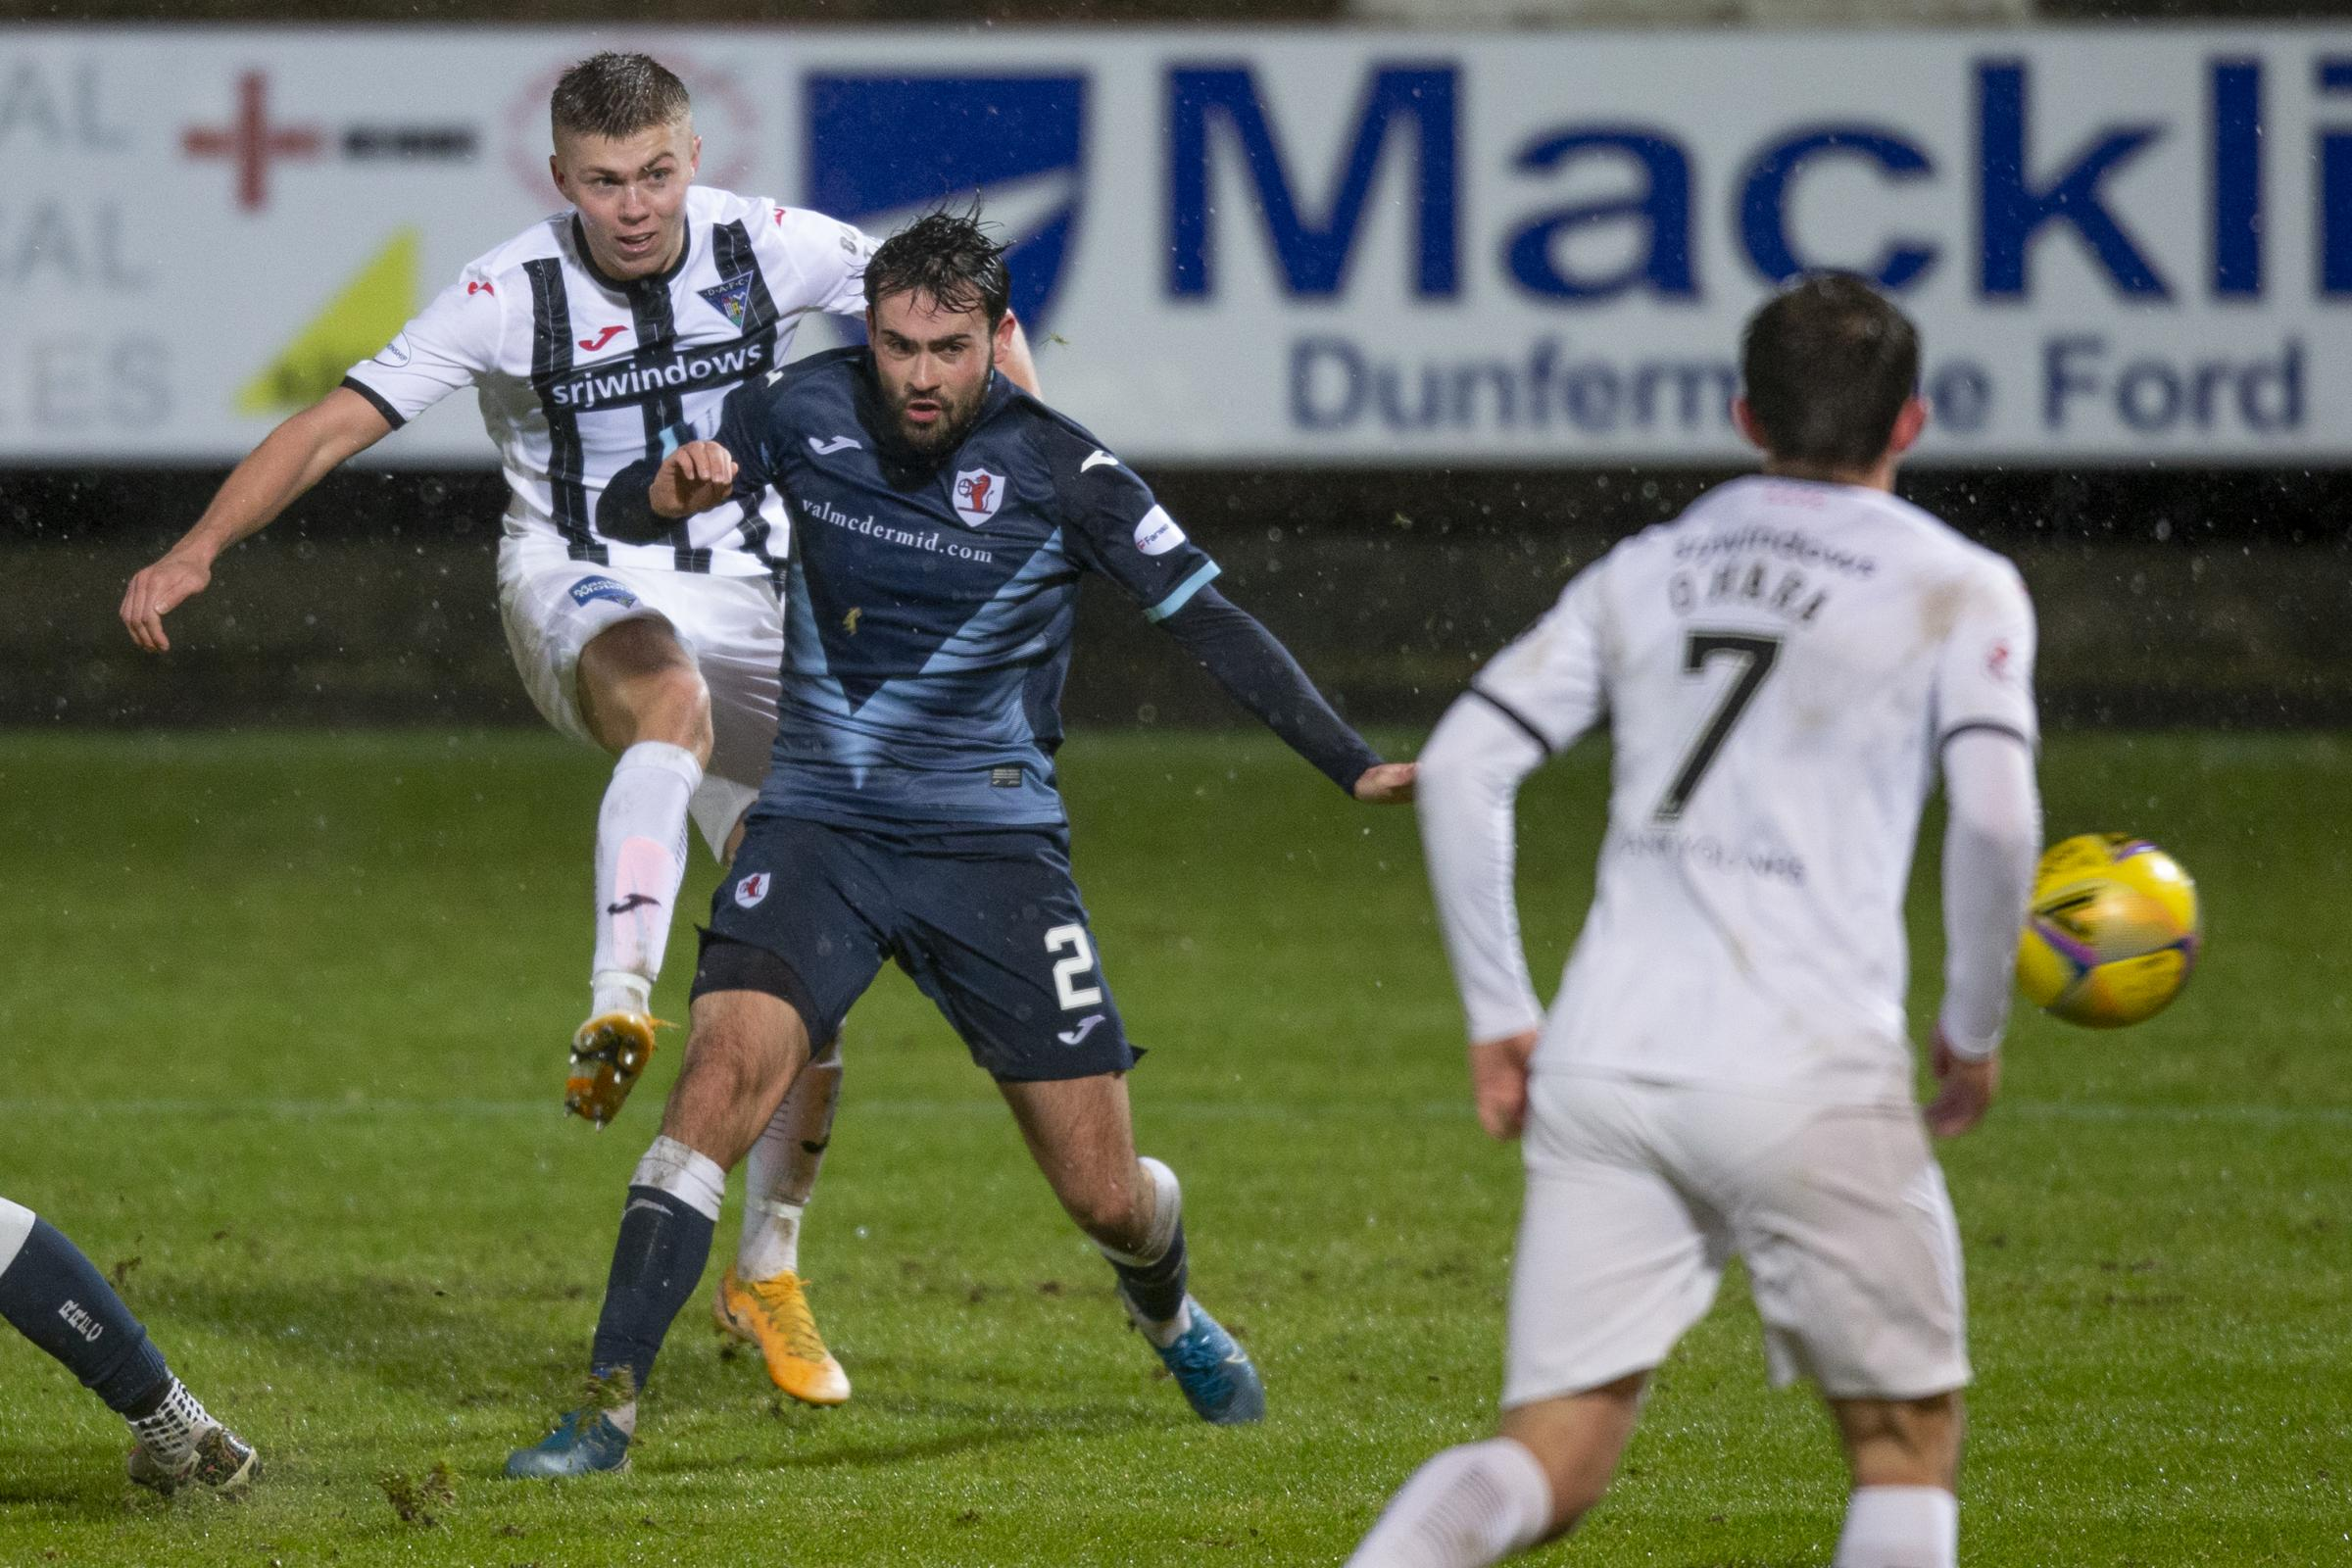 Live updates from Dunfermline v Raith Rovers